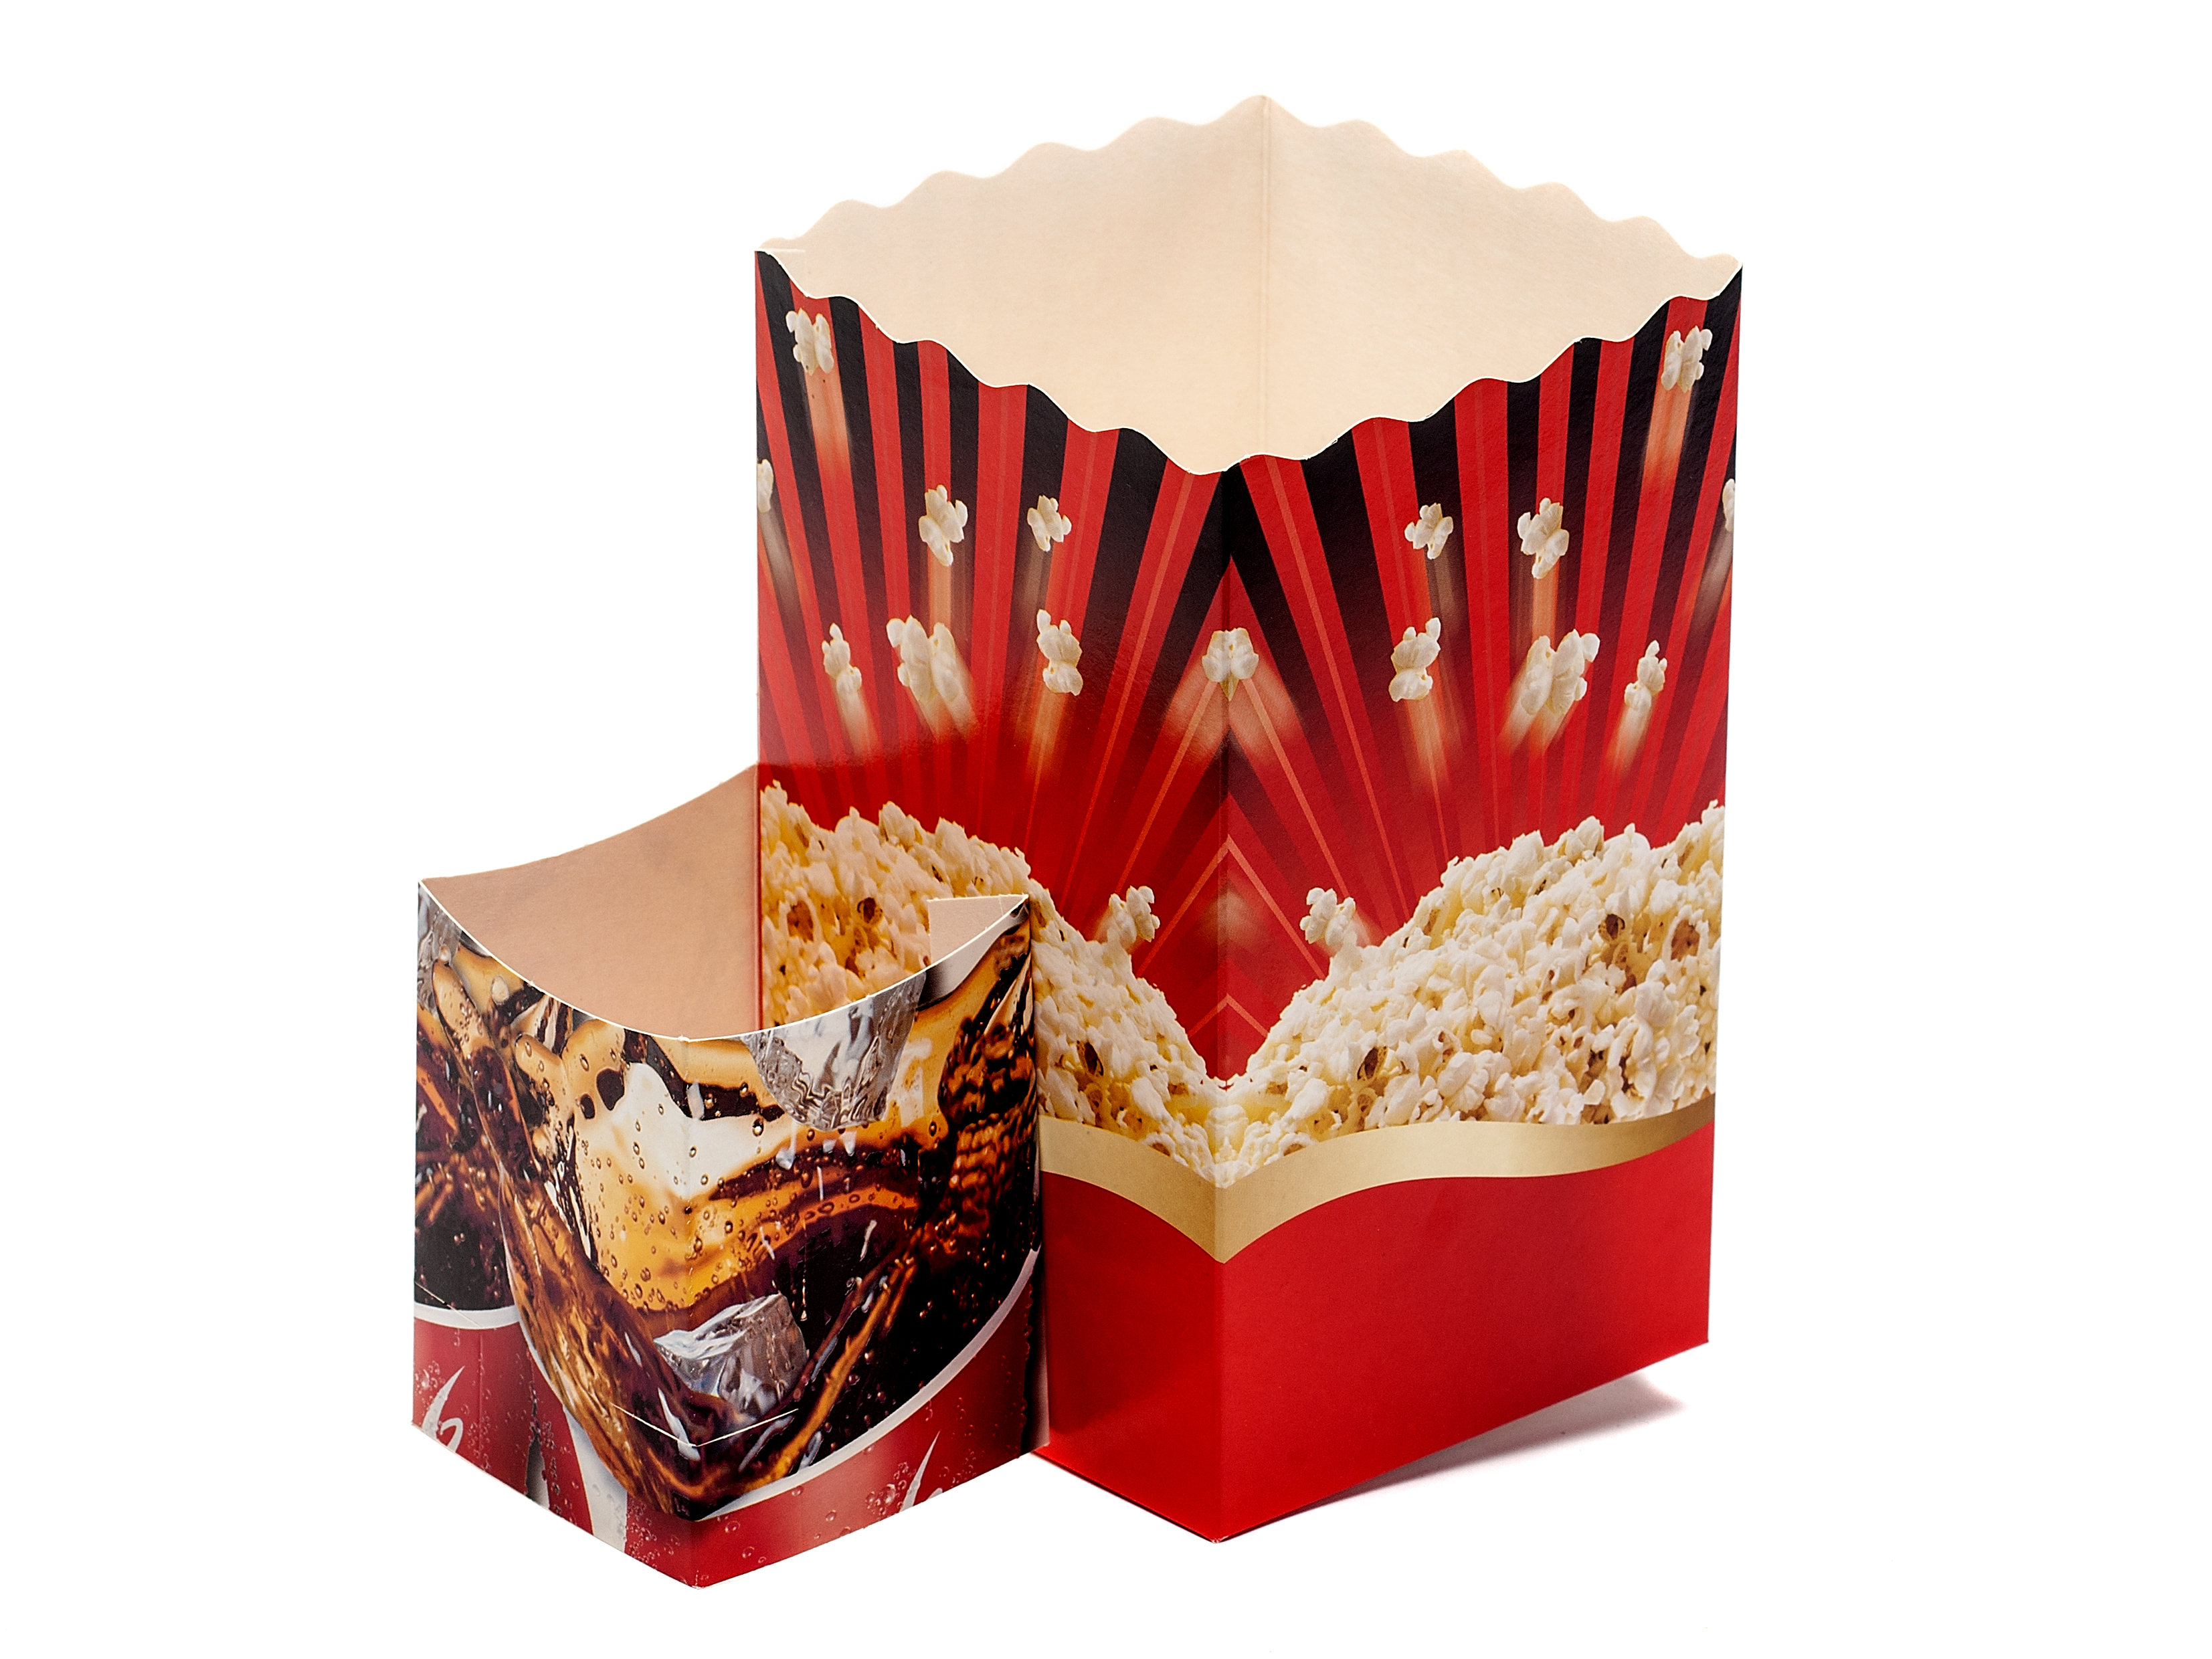 popcorn and drink carton in one piece